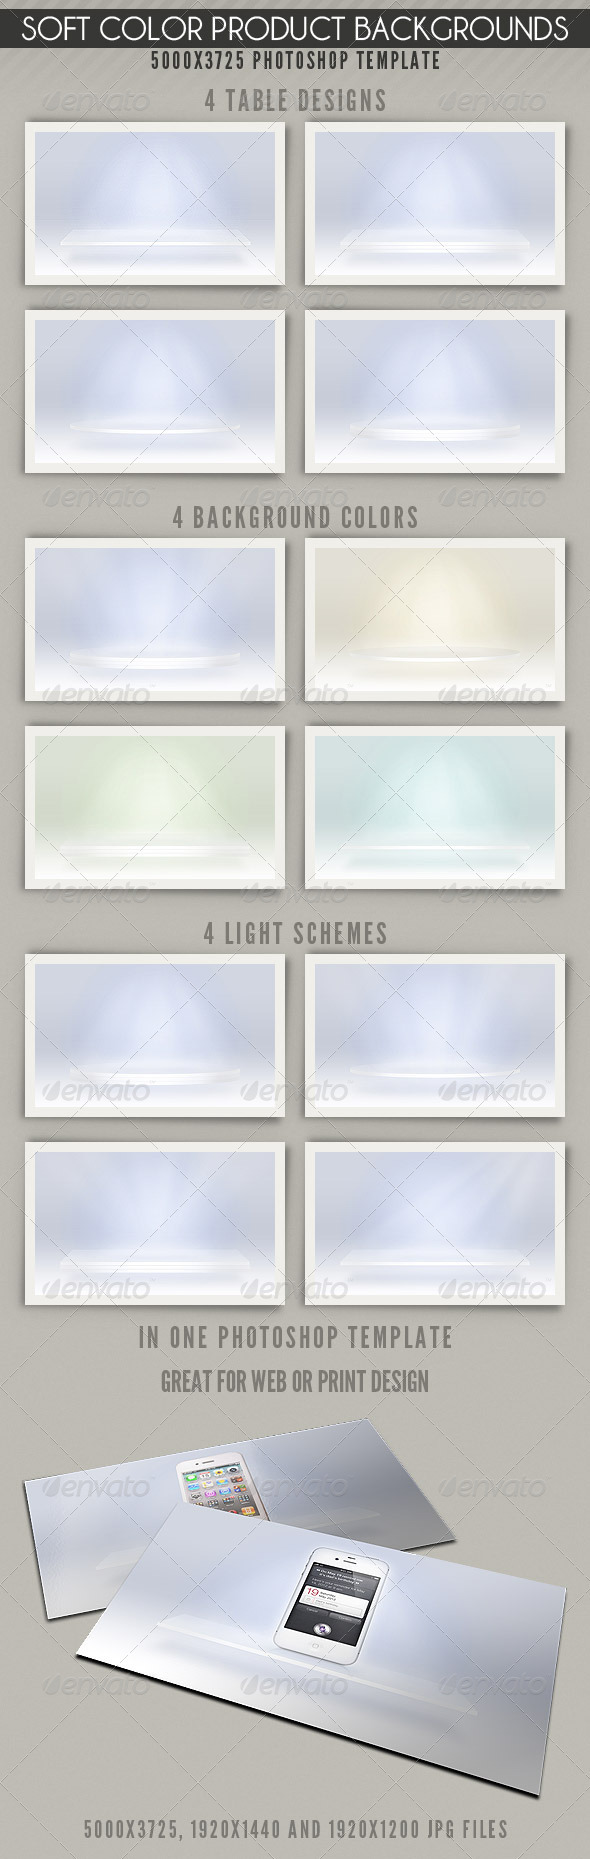 Soft Color Product Backgrounds - Abstract Backgrounds